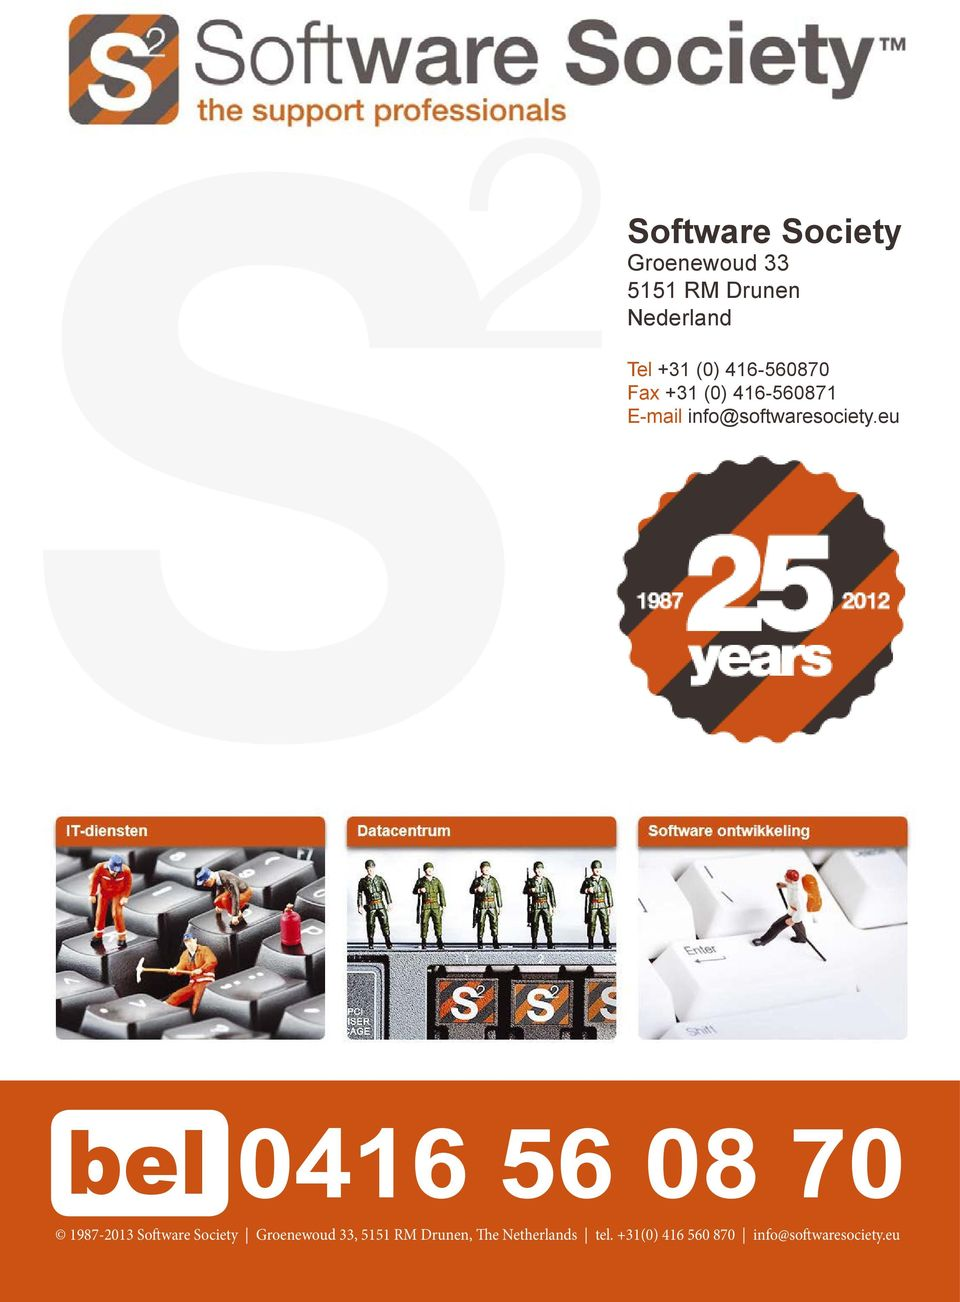 eu bel 0416 56 08 70 1987-2013 Software Society Groenewoud 33, 5151